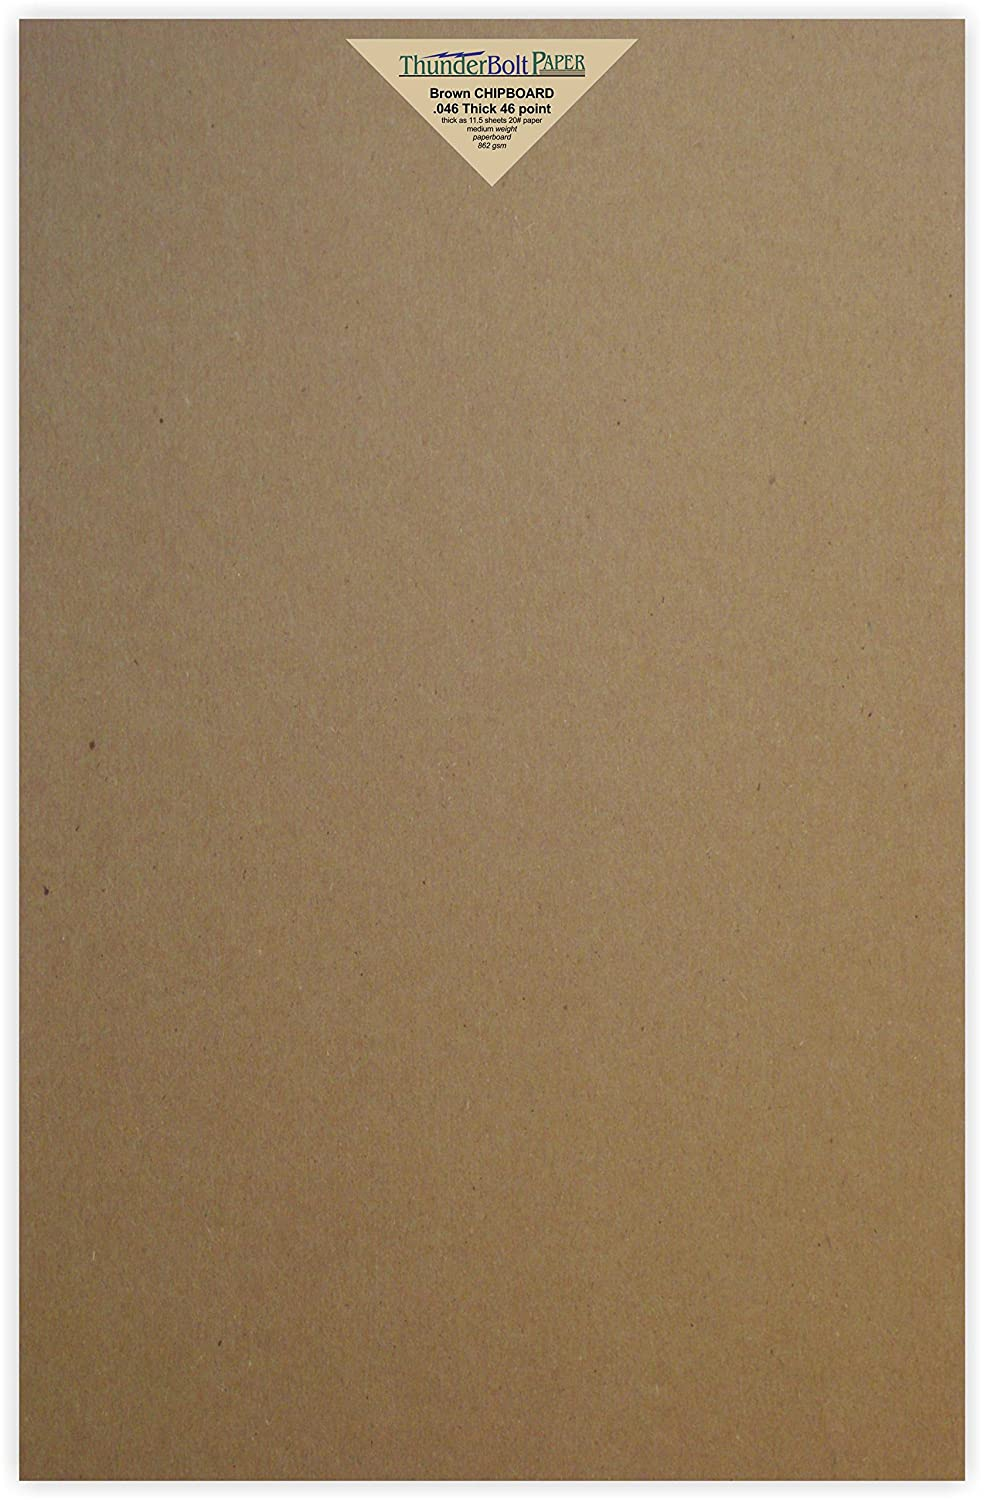 10 Sheets Chipboard 46pt (point) 12 X 18 Inches Heavy Weight Large Size .046 Caliper Thick Cardboard Craft|Packaging Brown Kraft Paper Board TBP